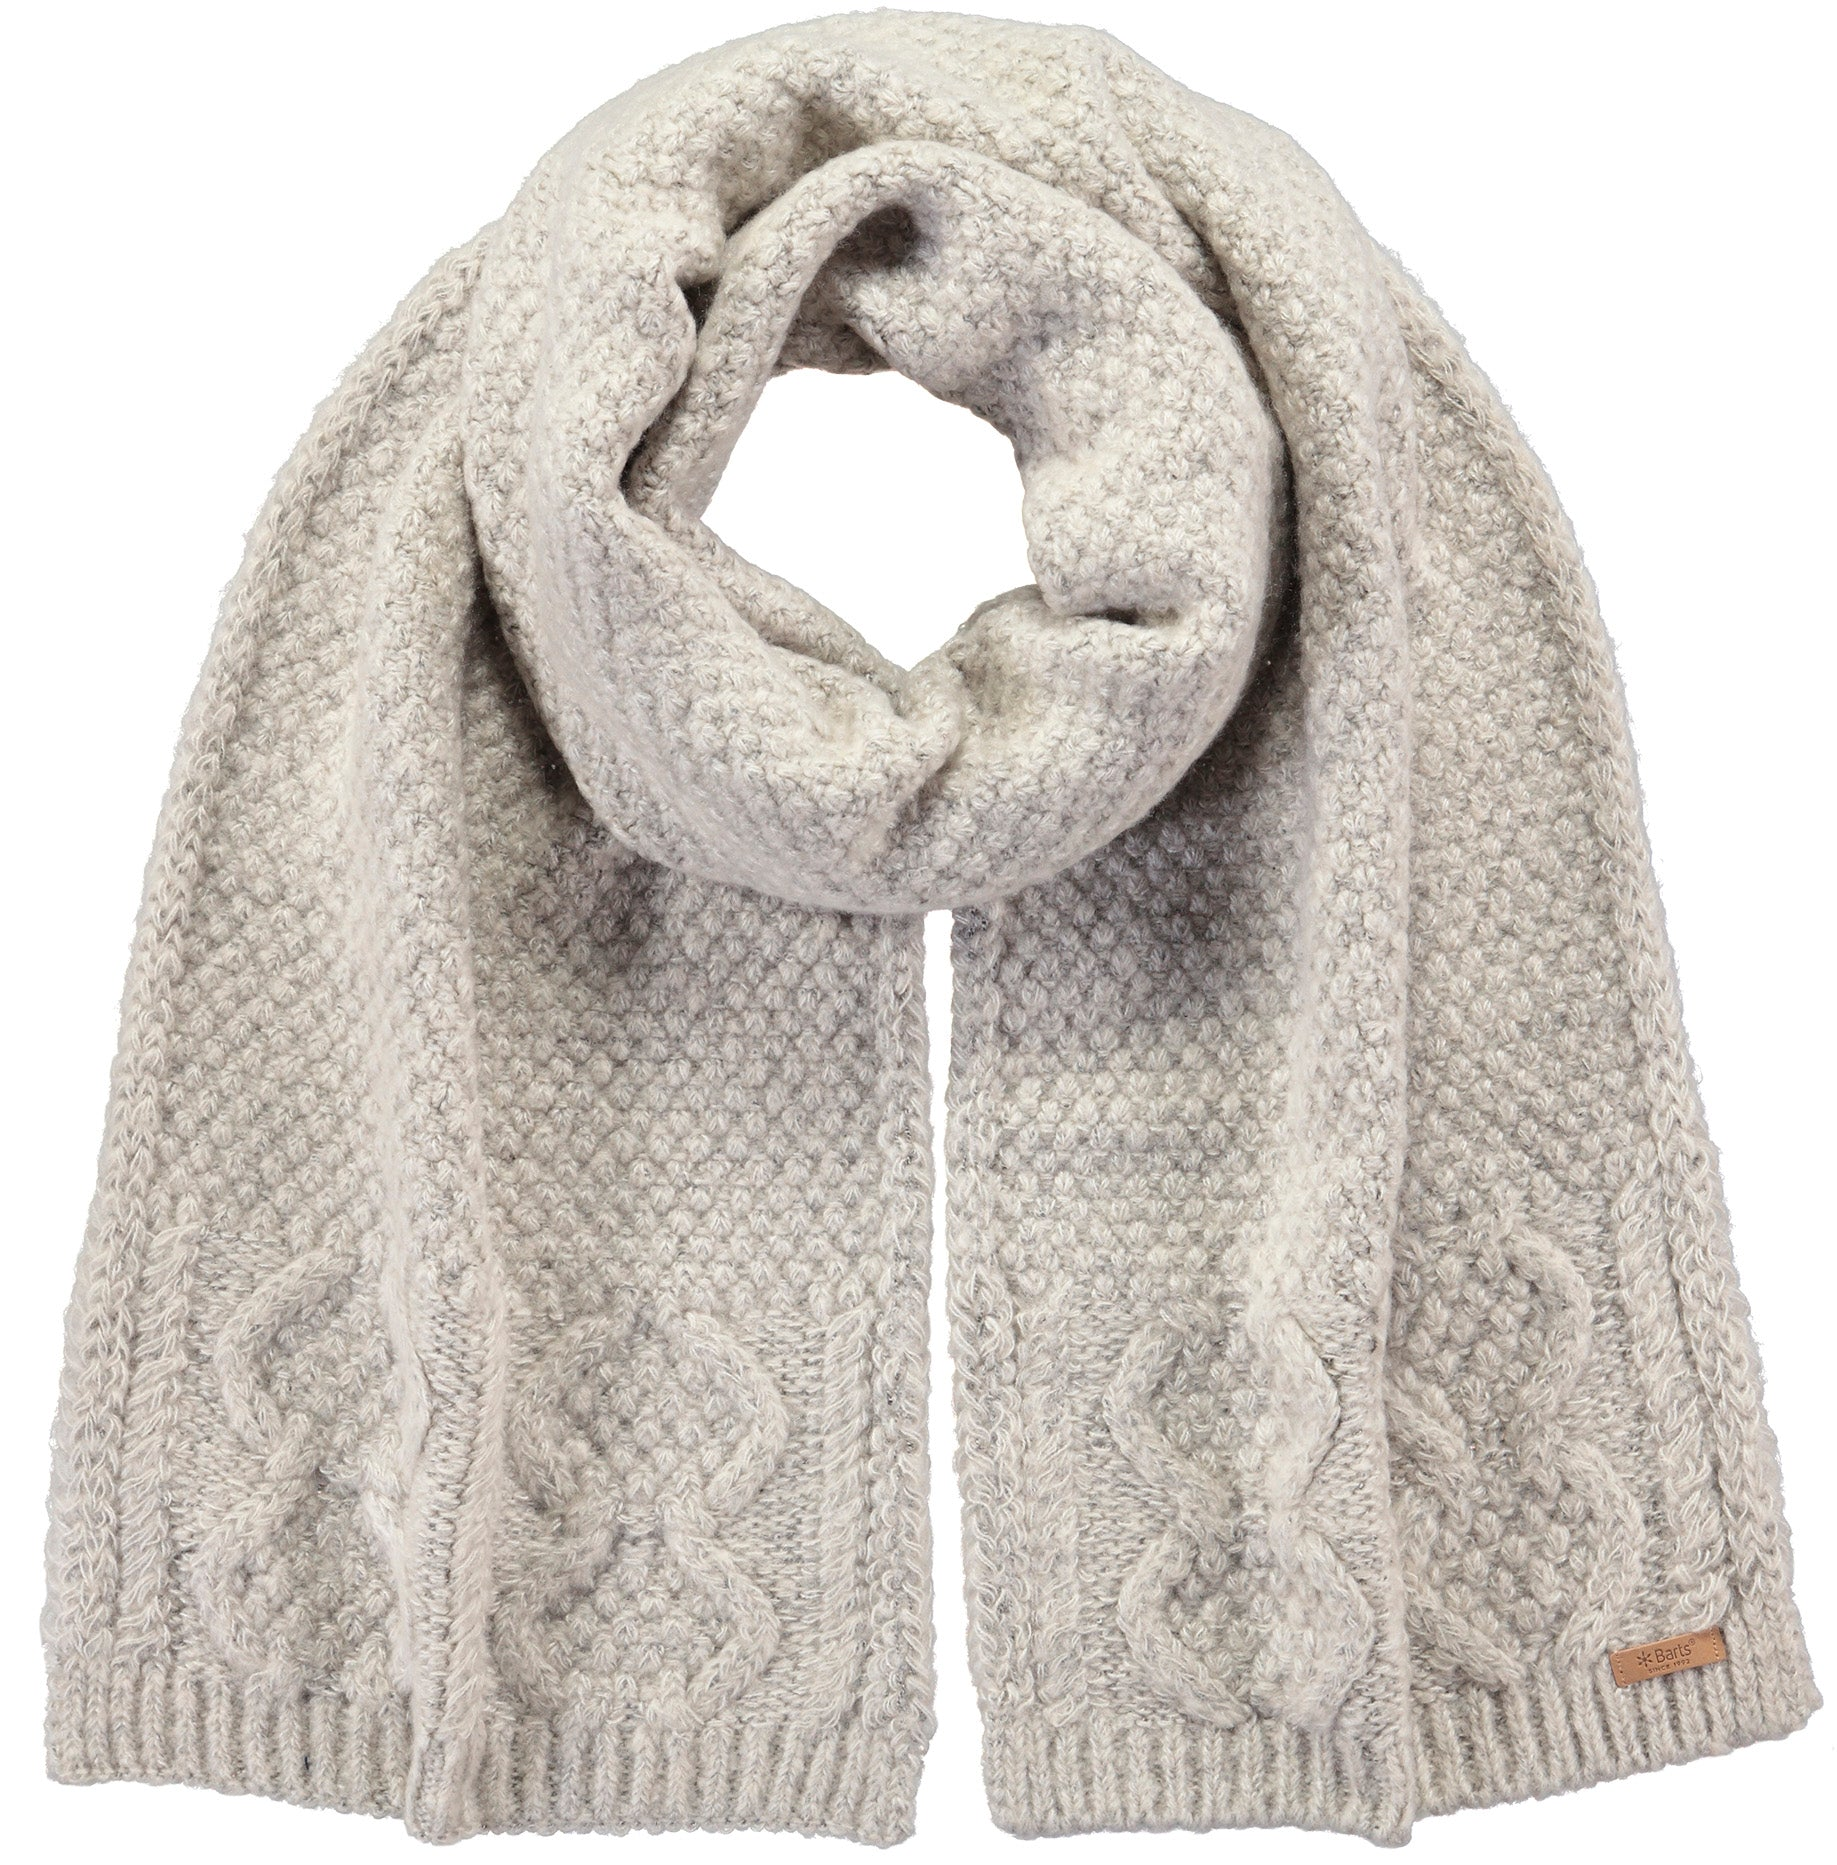 Barts Antonia Scarf for Ladies in Cream